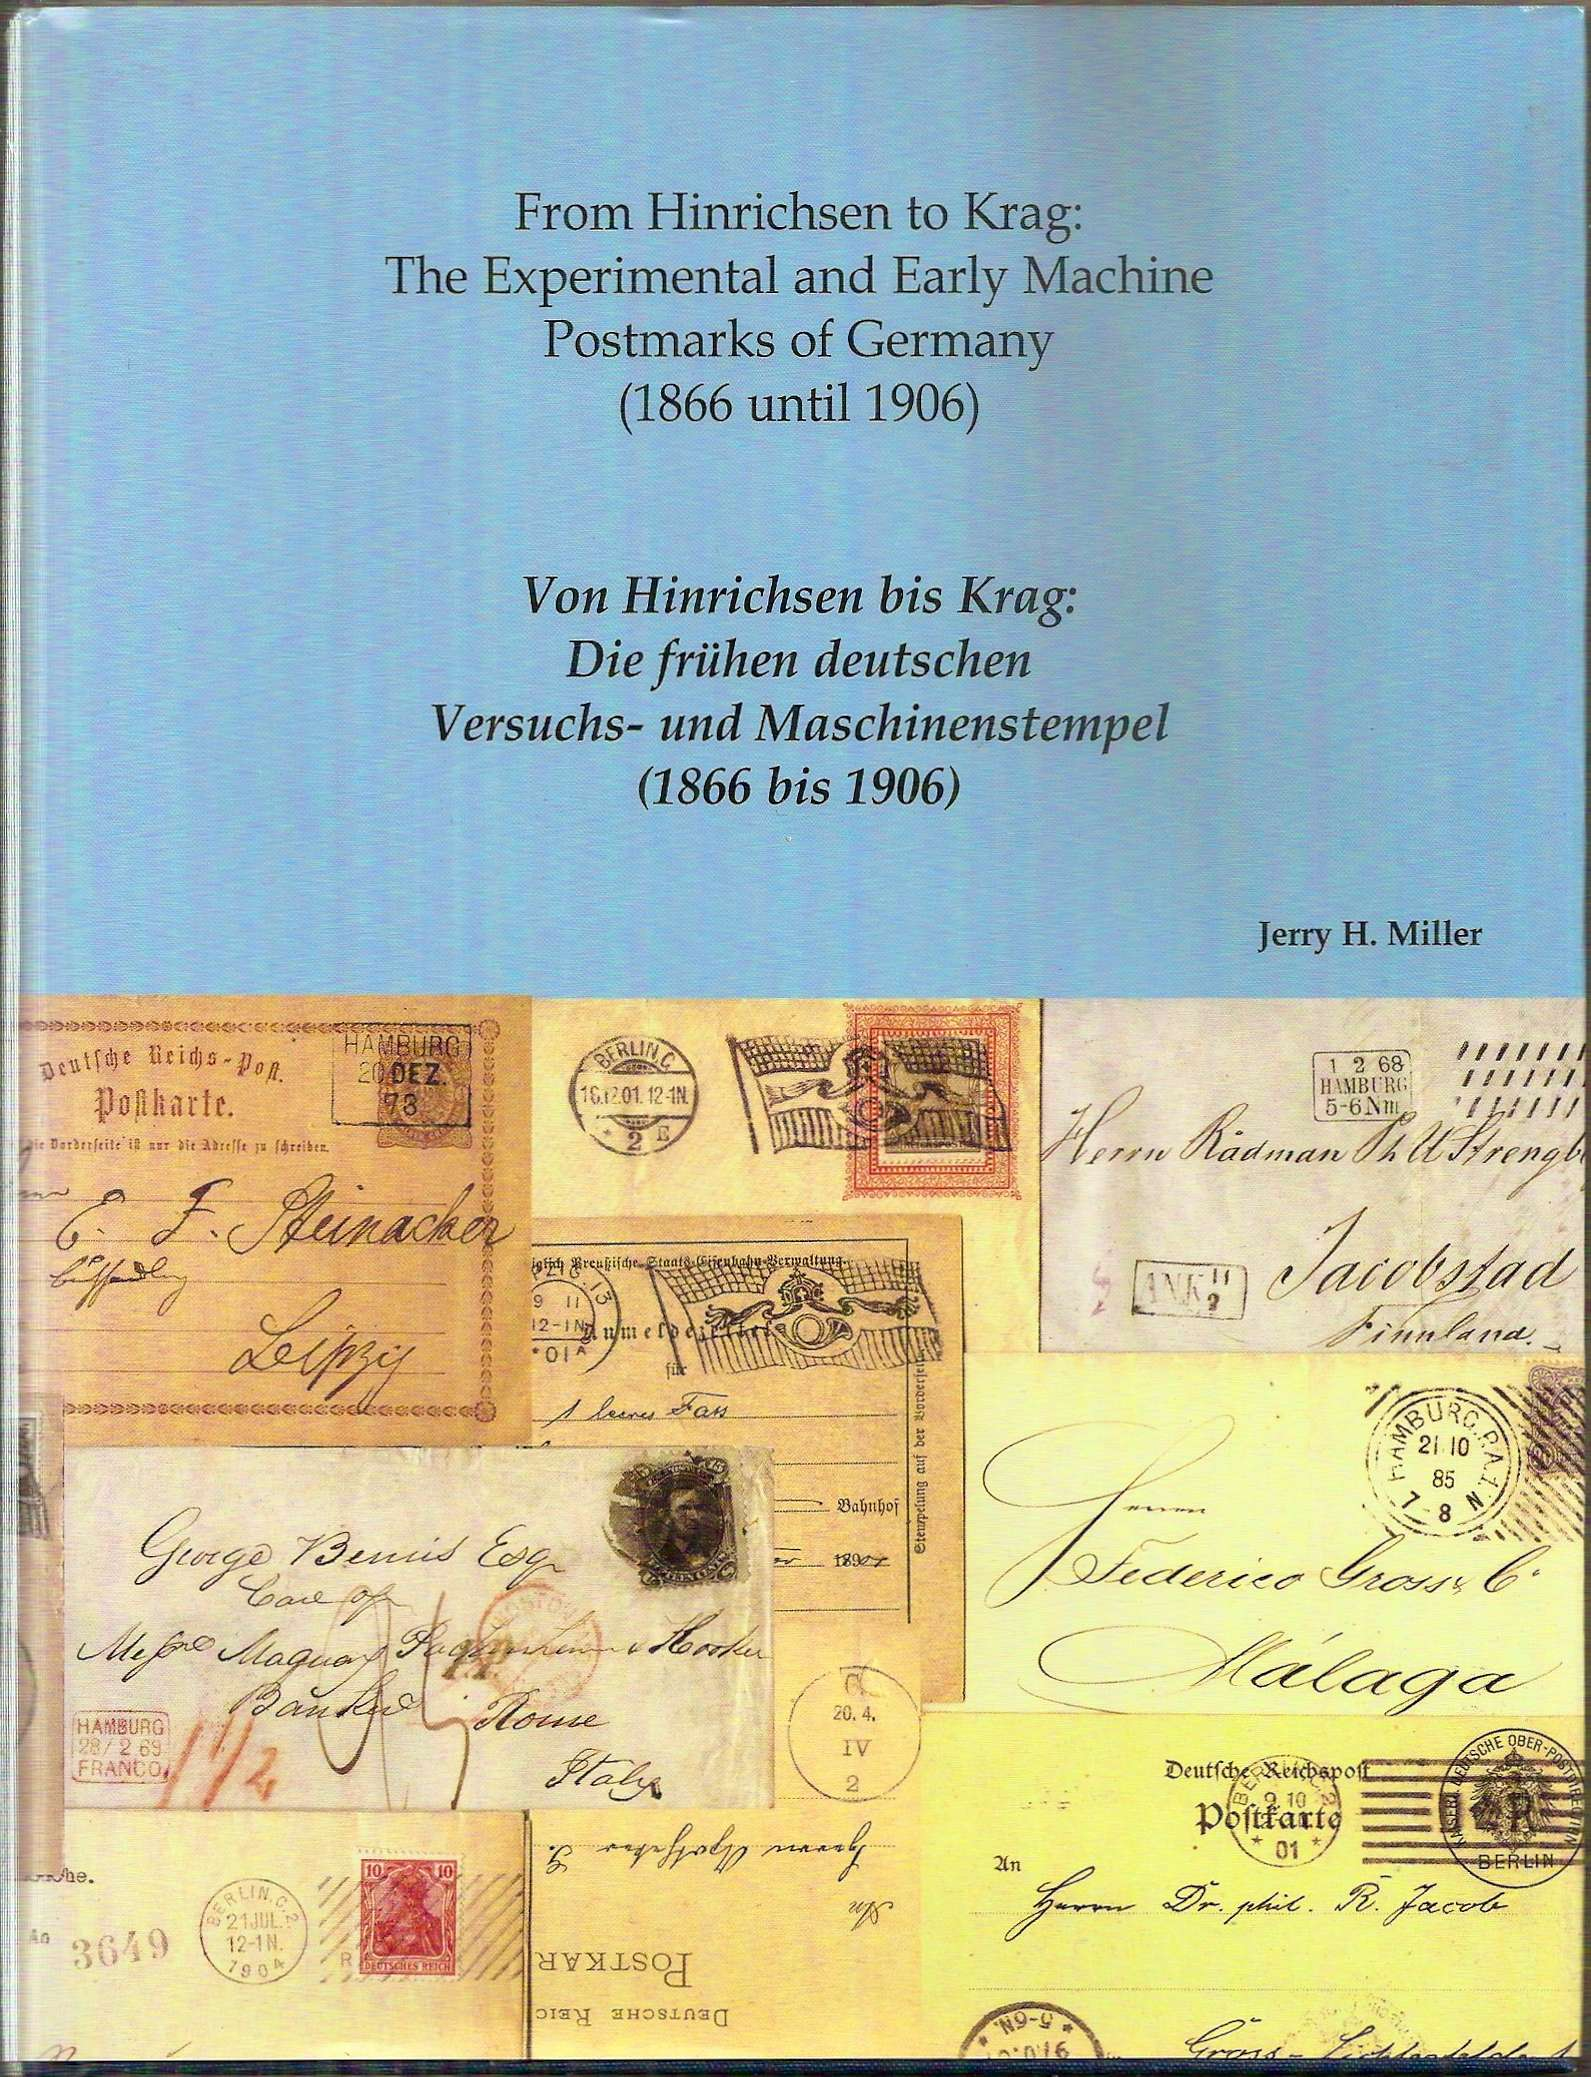 THE EXPERIMENTAL AND EARLY MACHINE POSTMARKS OF GERMANY, Jerry H Miller, 2008 (hardback)